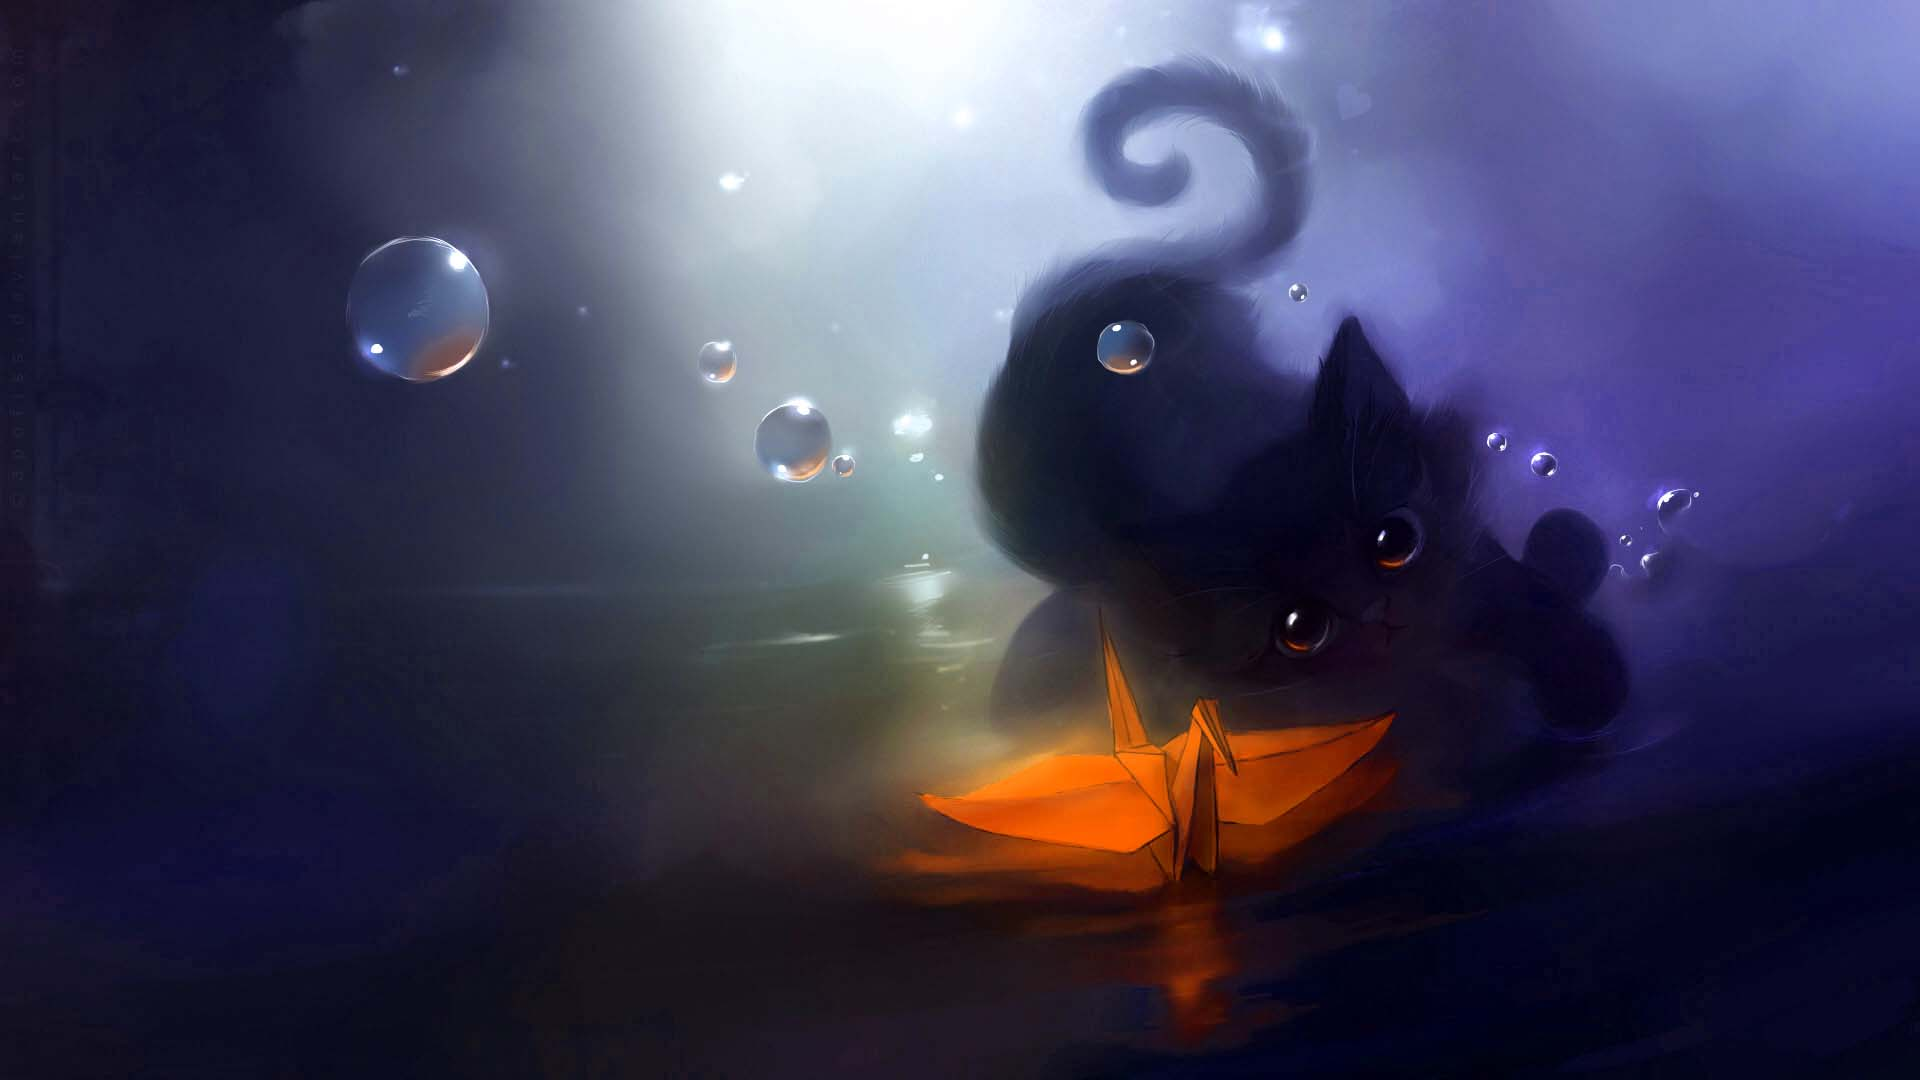 black-cat-cartoon-Google-Search-wallpaper-wp3603389